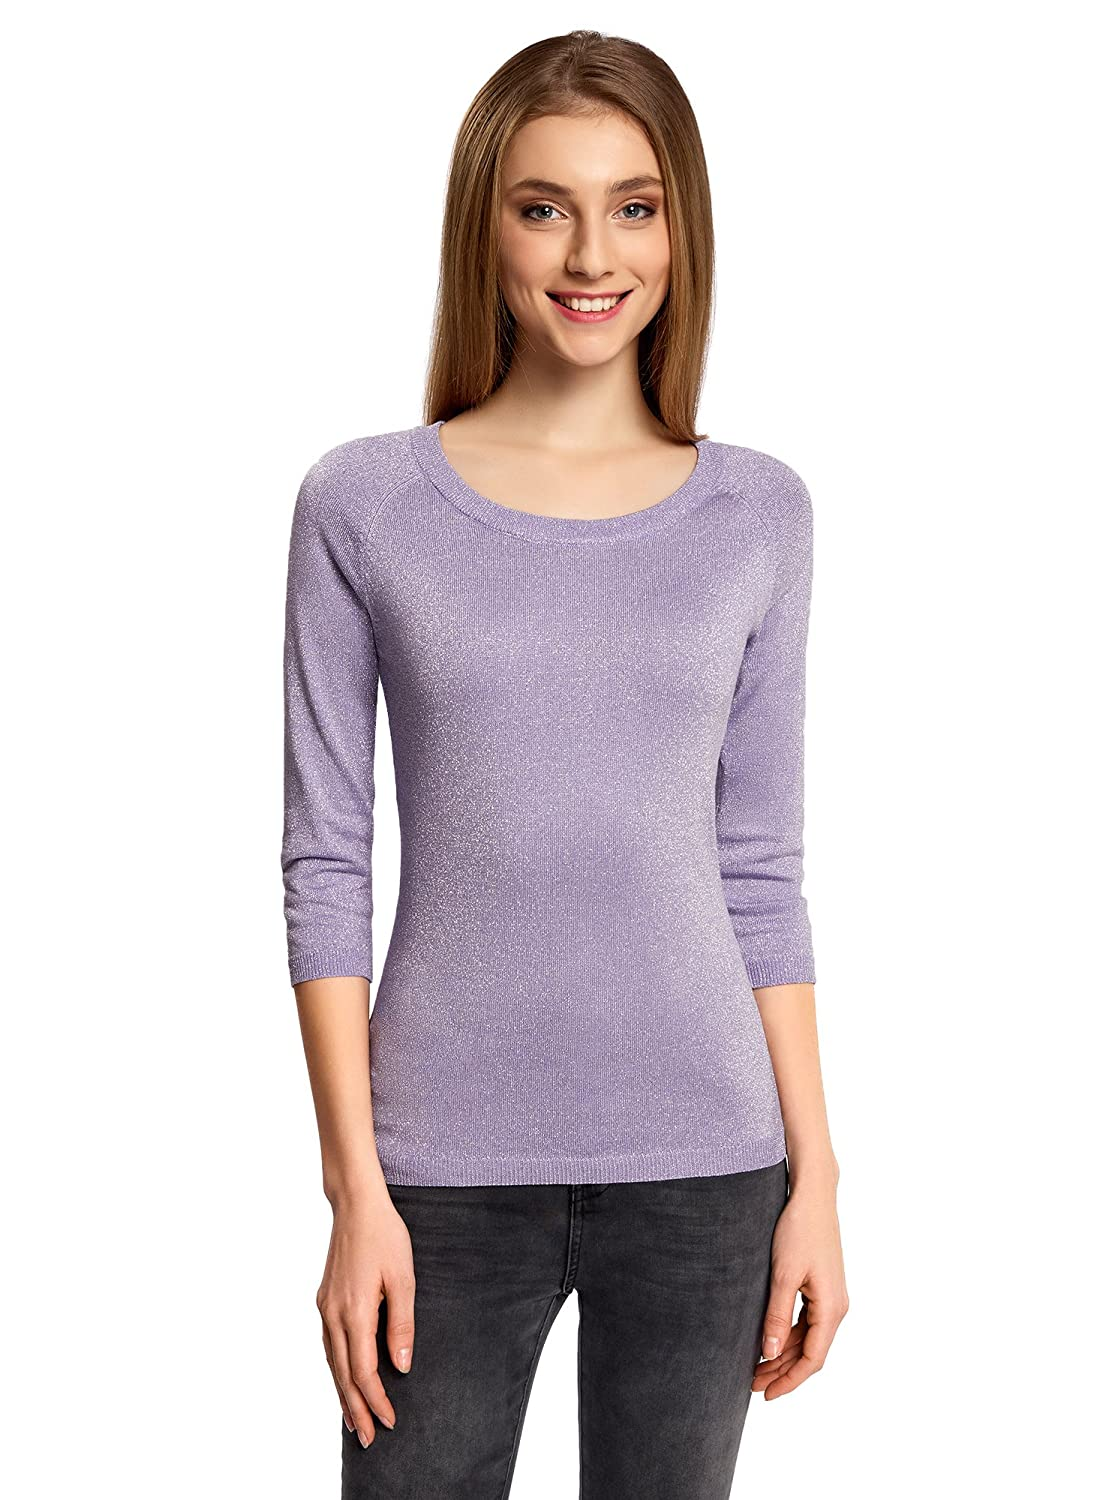 oodji Collection Women's 3/4 Sleeve Sparkling Pullover RIFICZECH s.r.o. 73812654